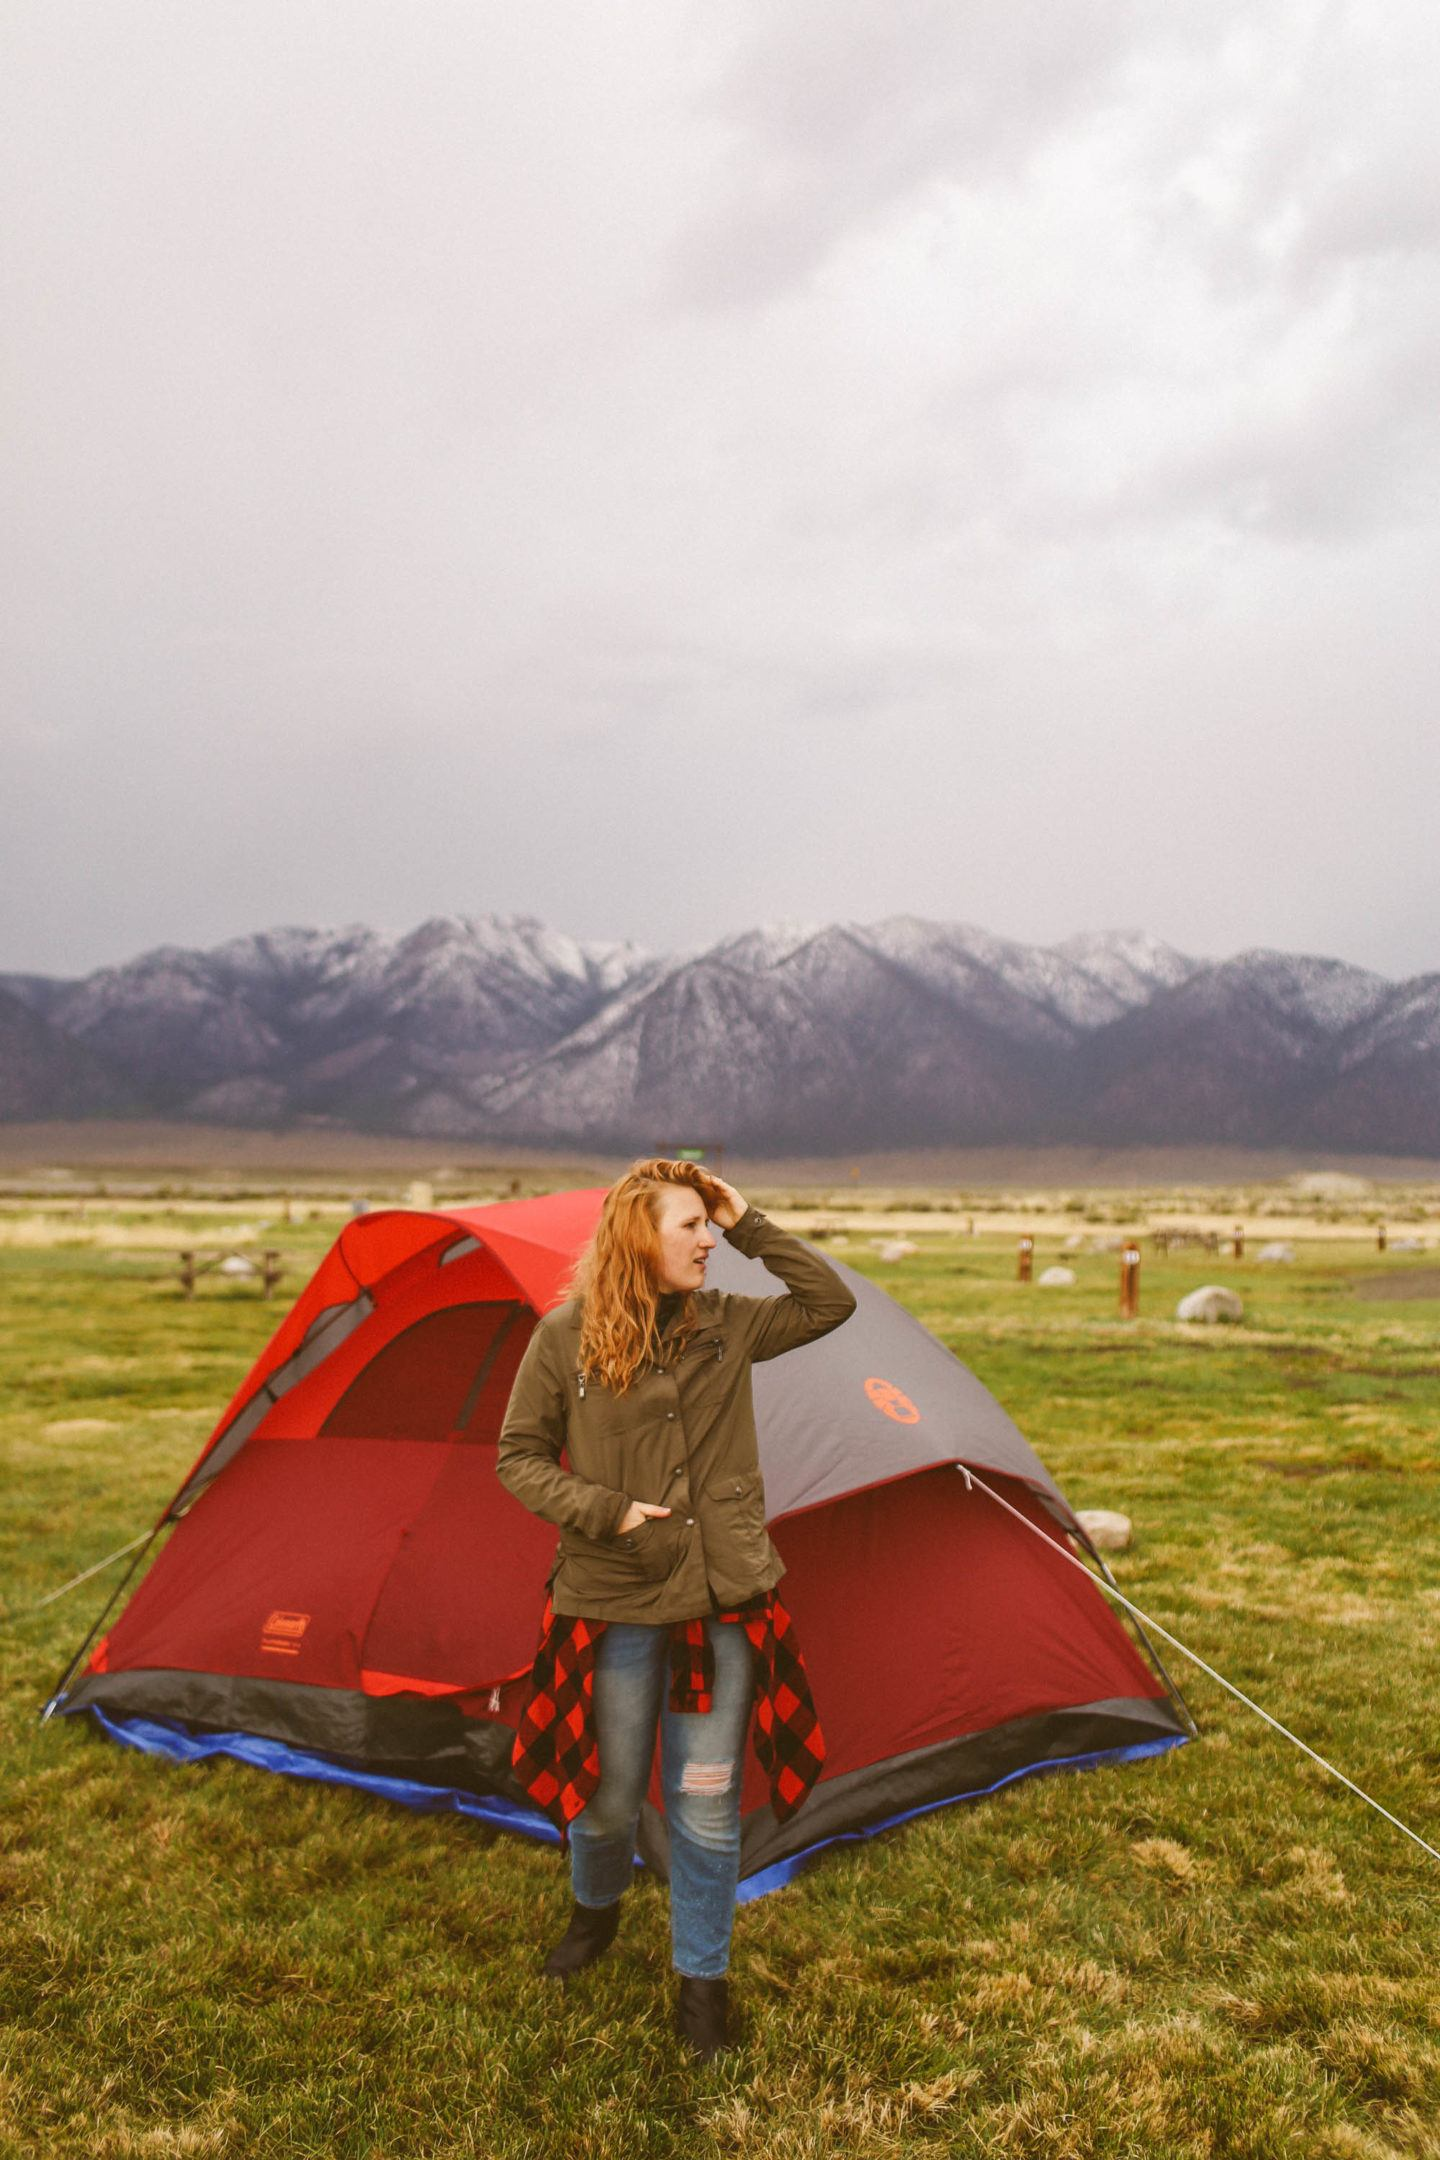 Woman standing in front of tent with mountains in the background